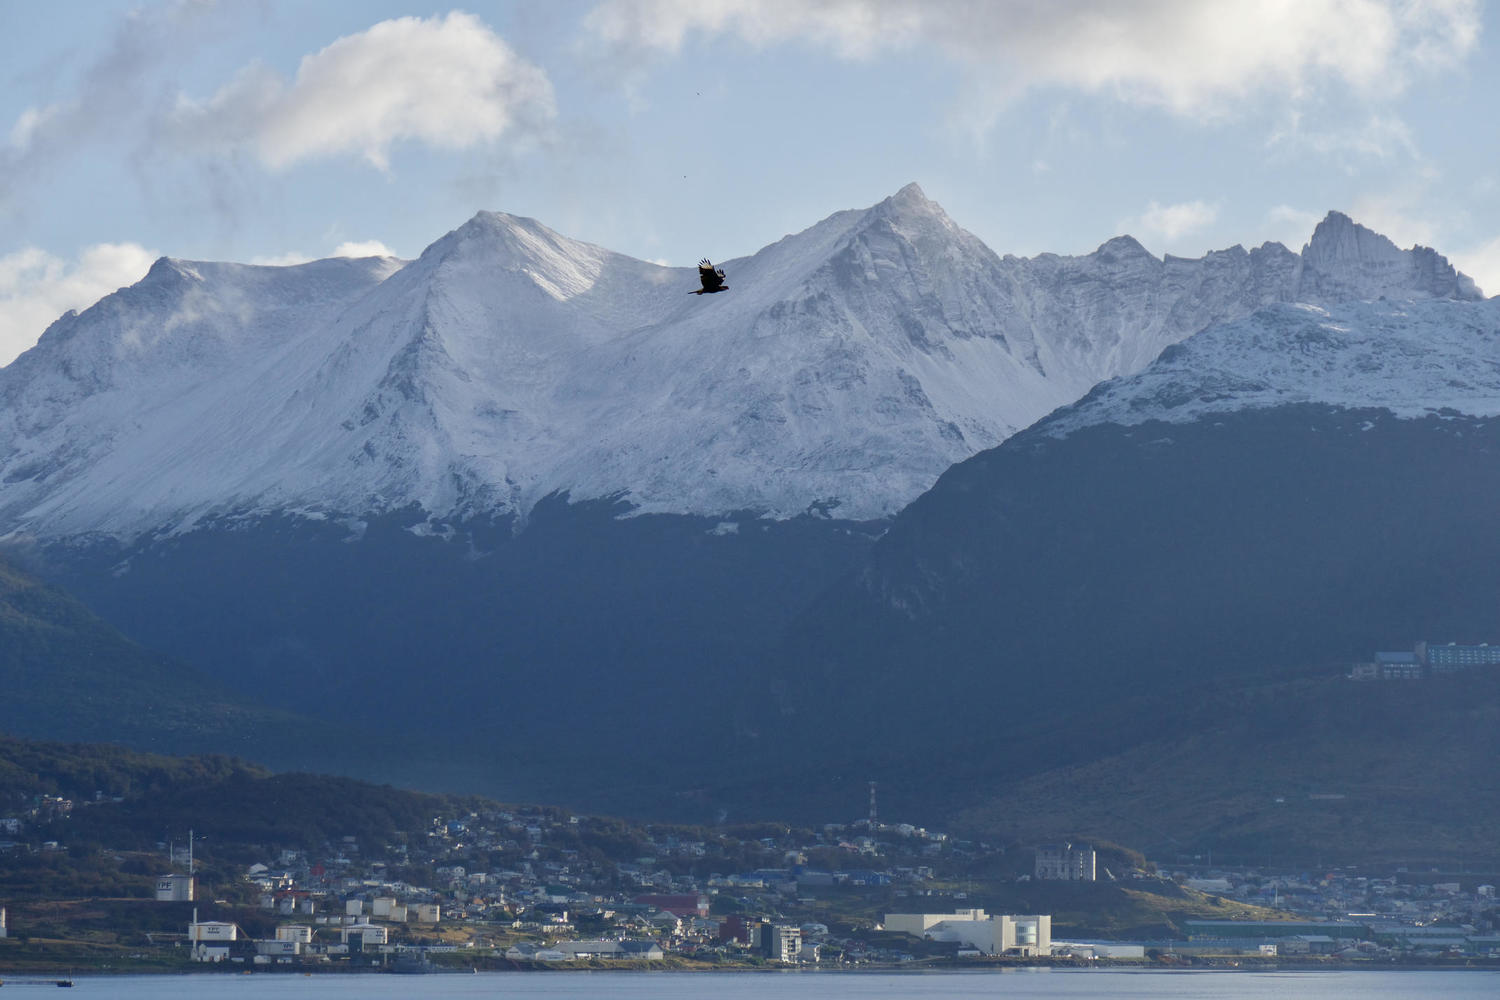 Ushuaia town view from airport with mountains behind